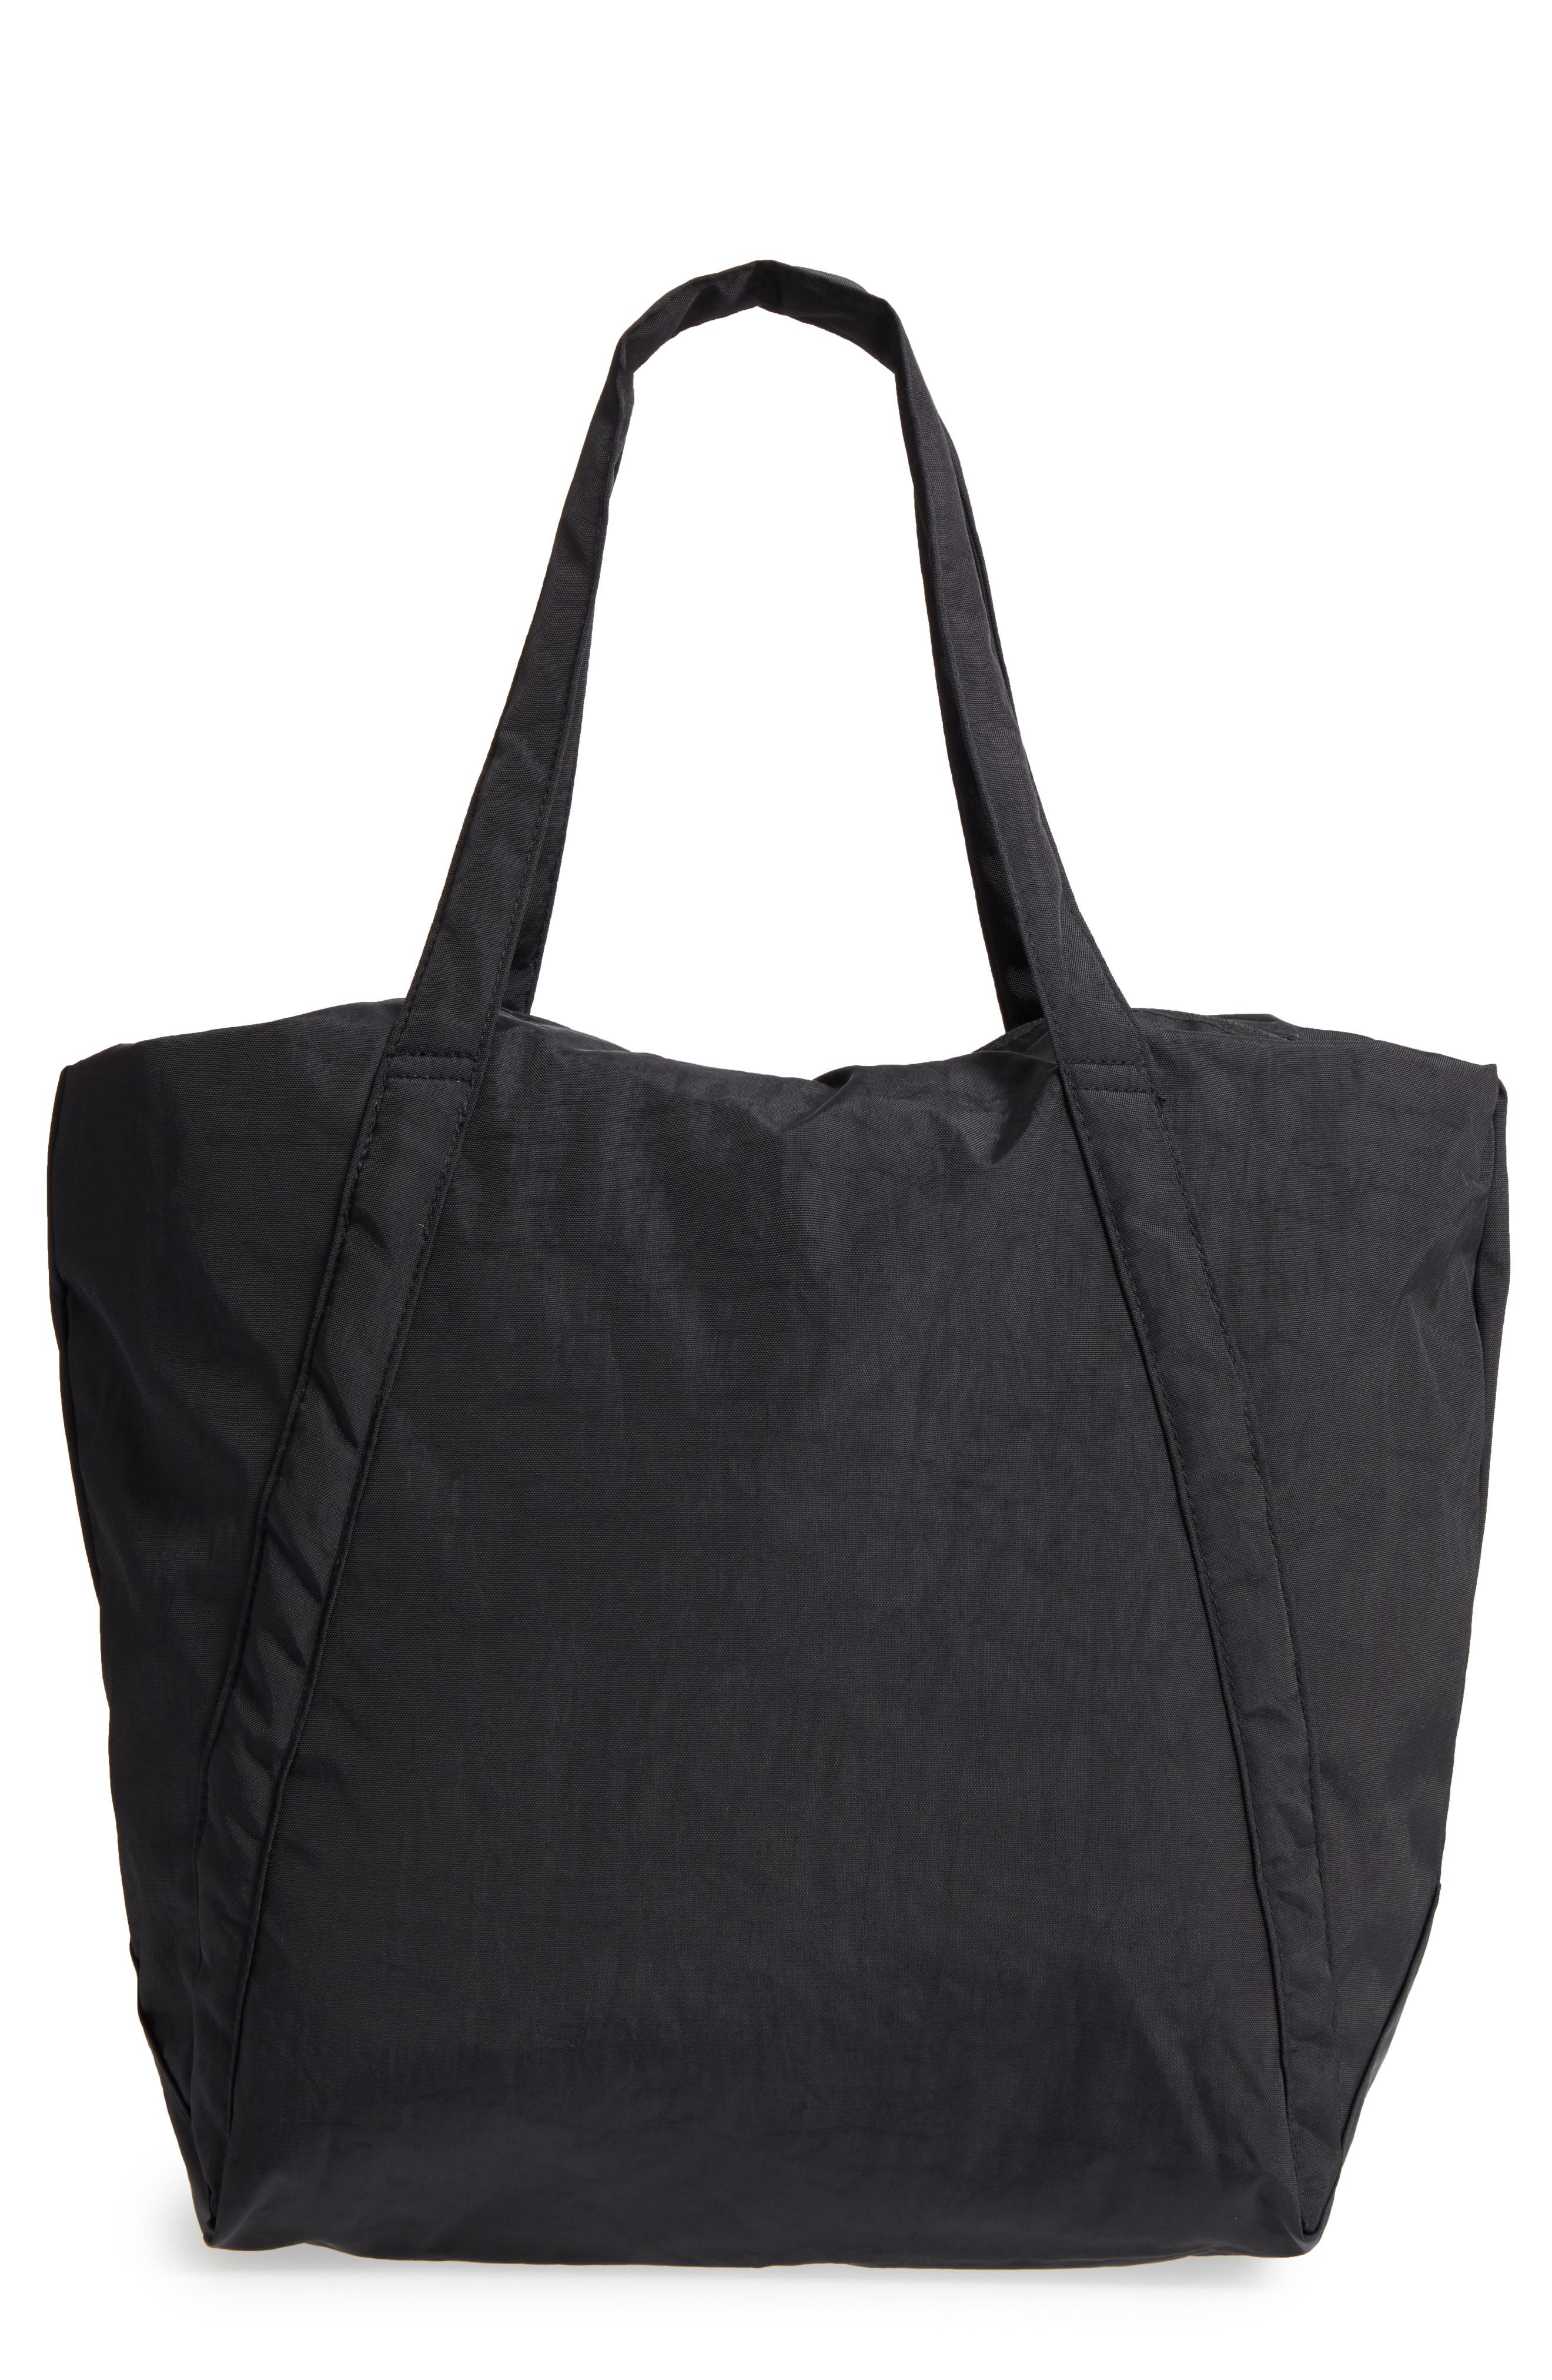 Cloud Tote,                         Main,                         color, 001